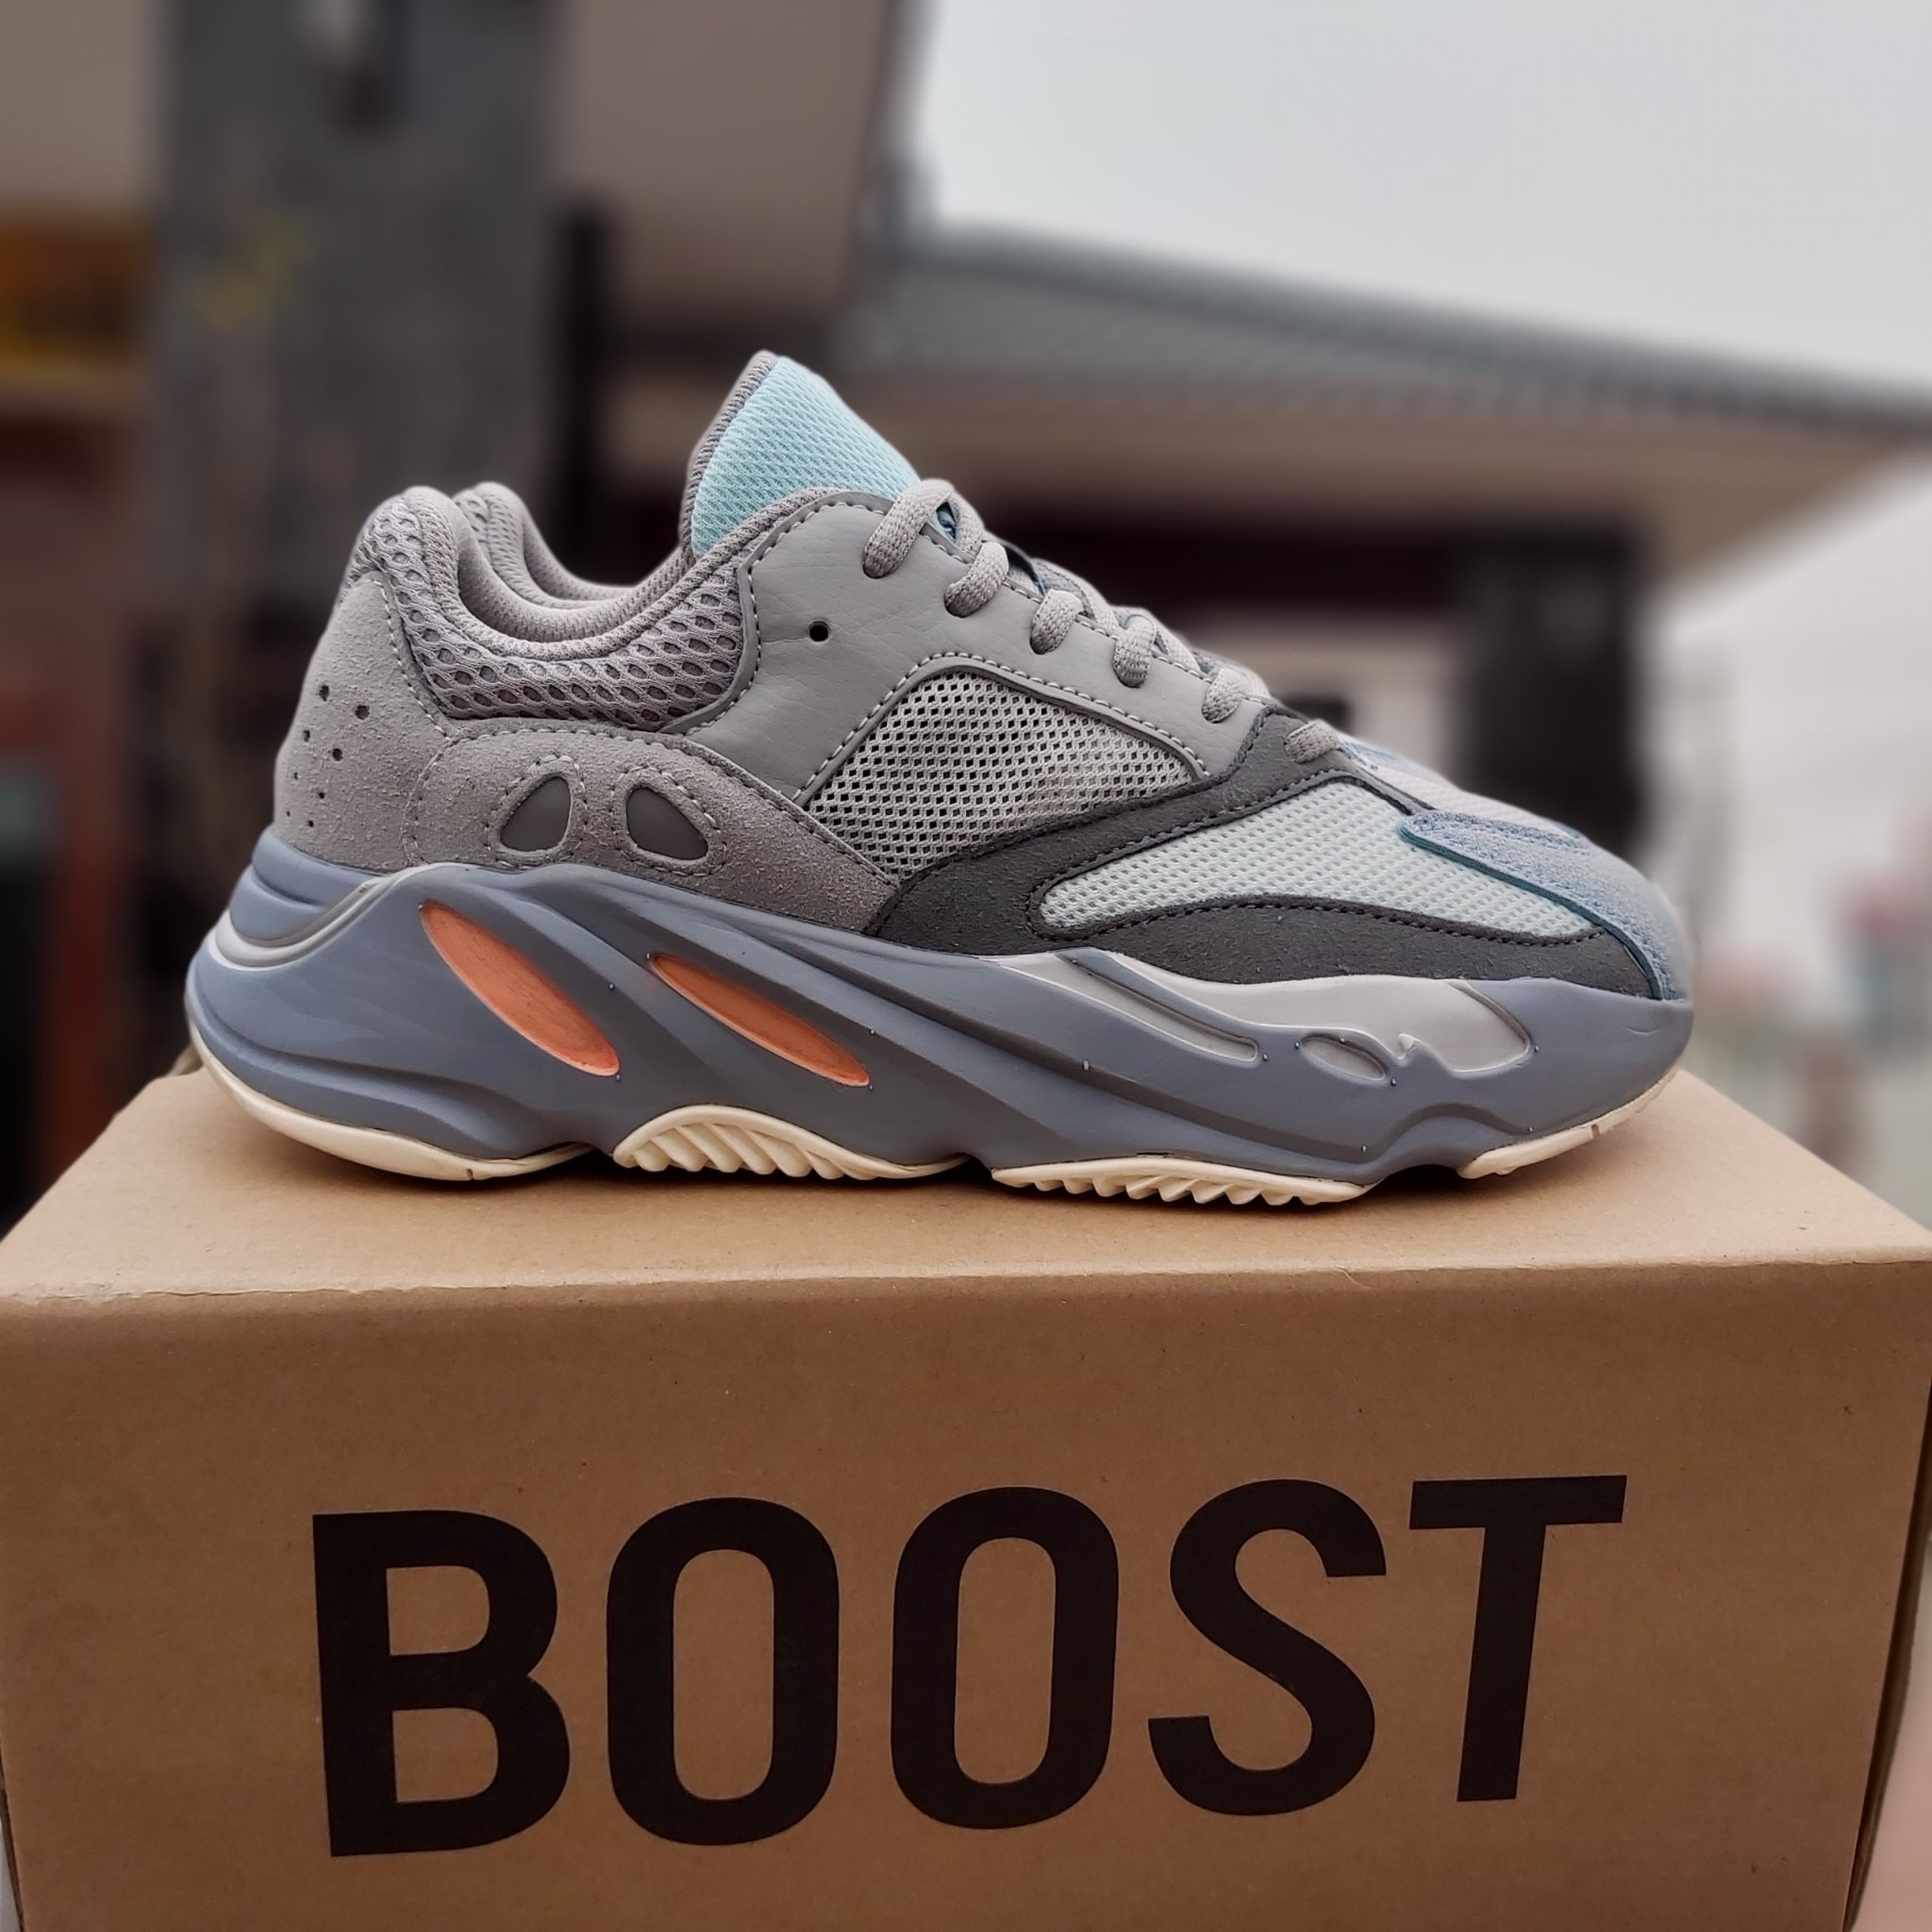 Giày thể thao Yeezy Boost 700 Inertia trẻ trung